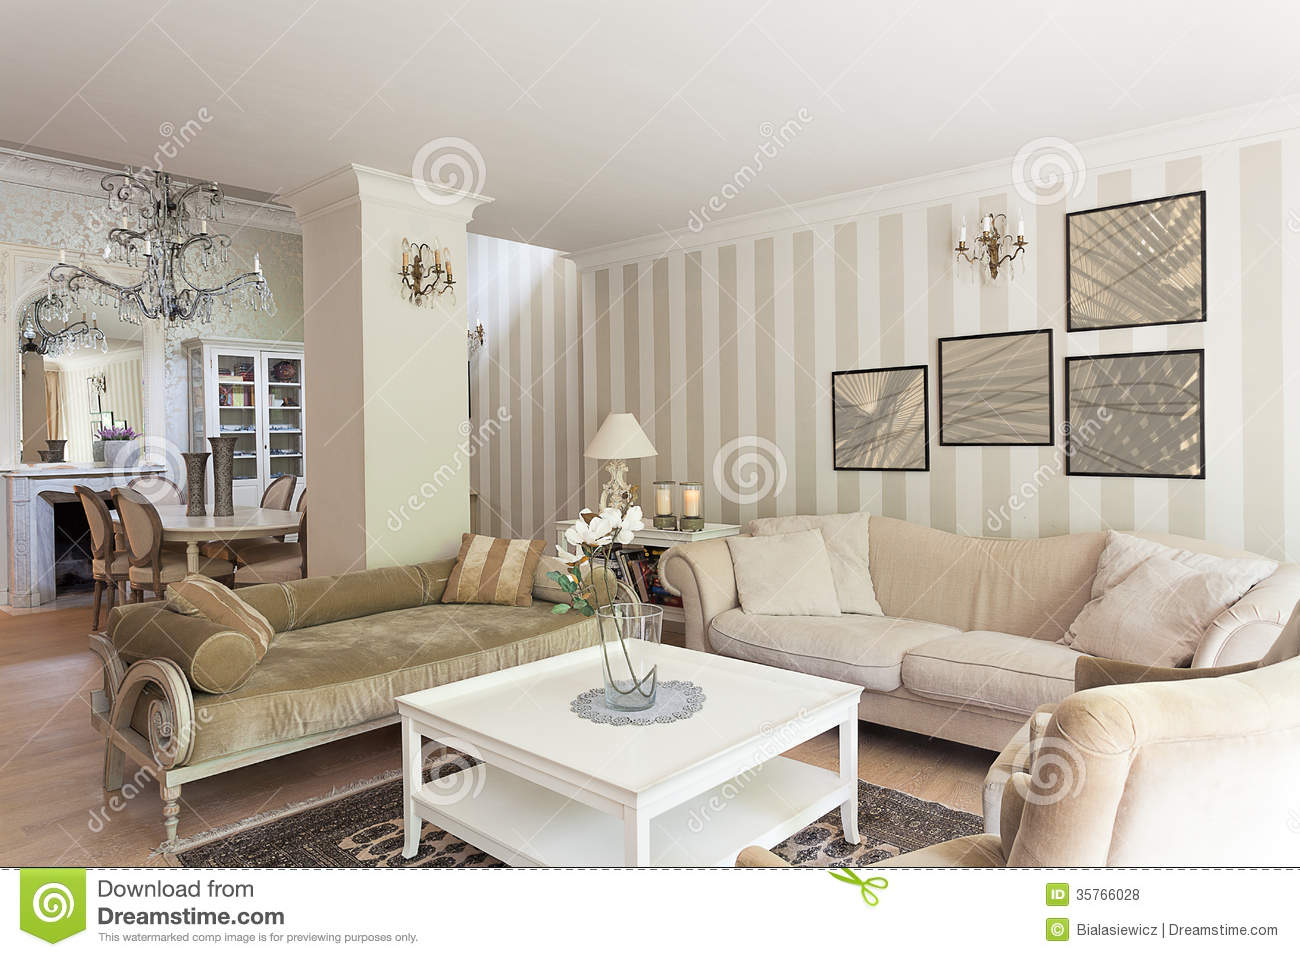 Vintage mansion drawing room royalty free stock photos for Sala de estar beige